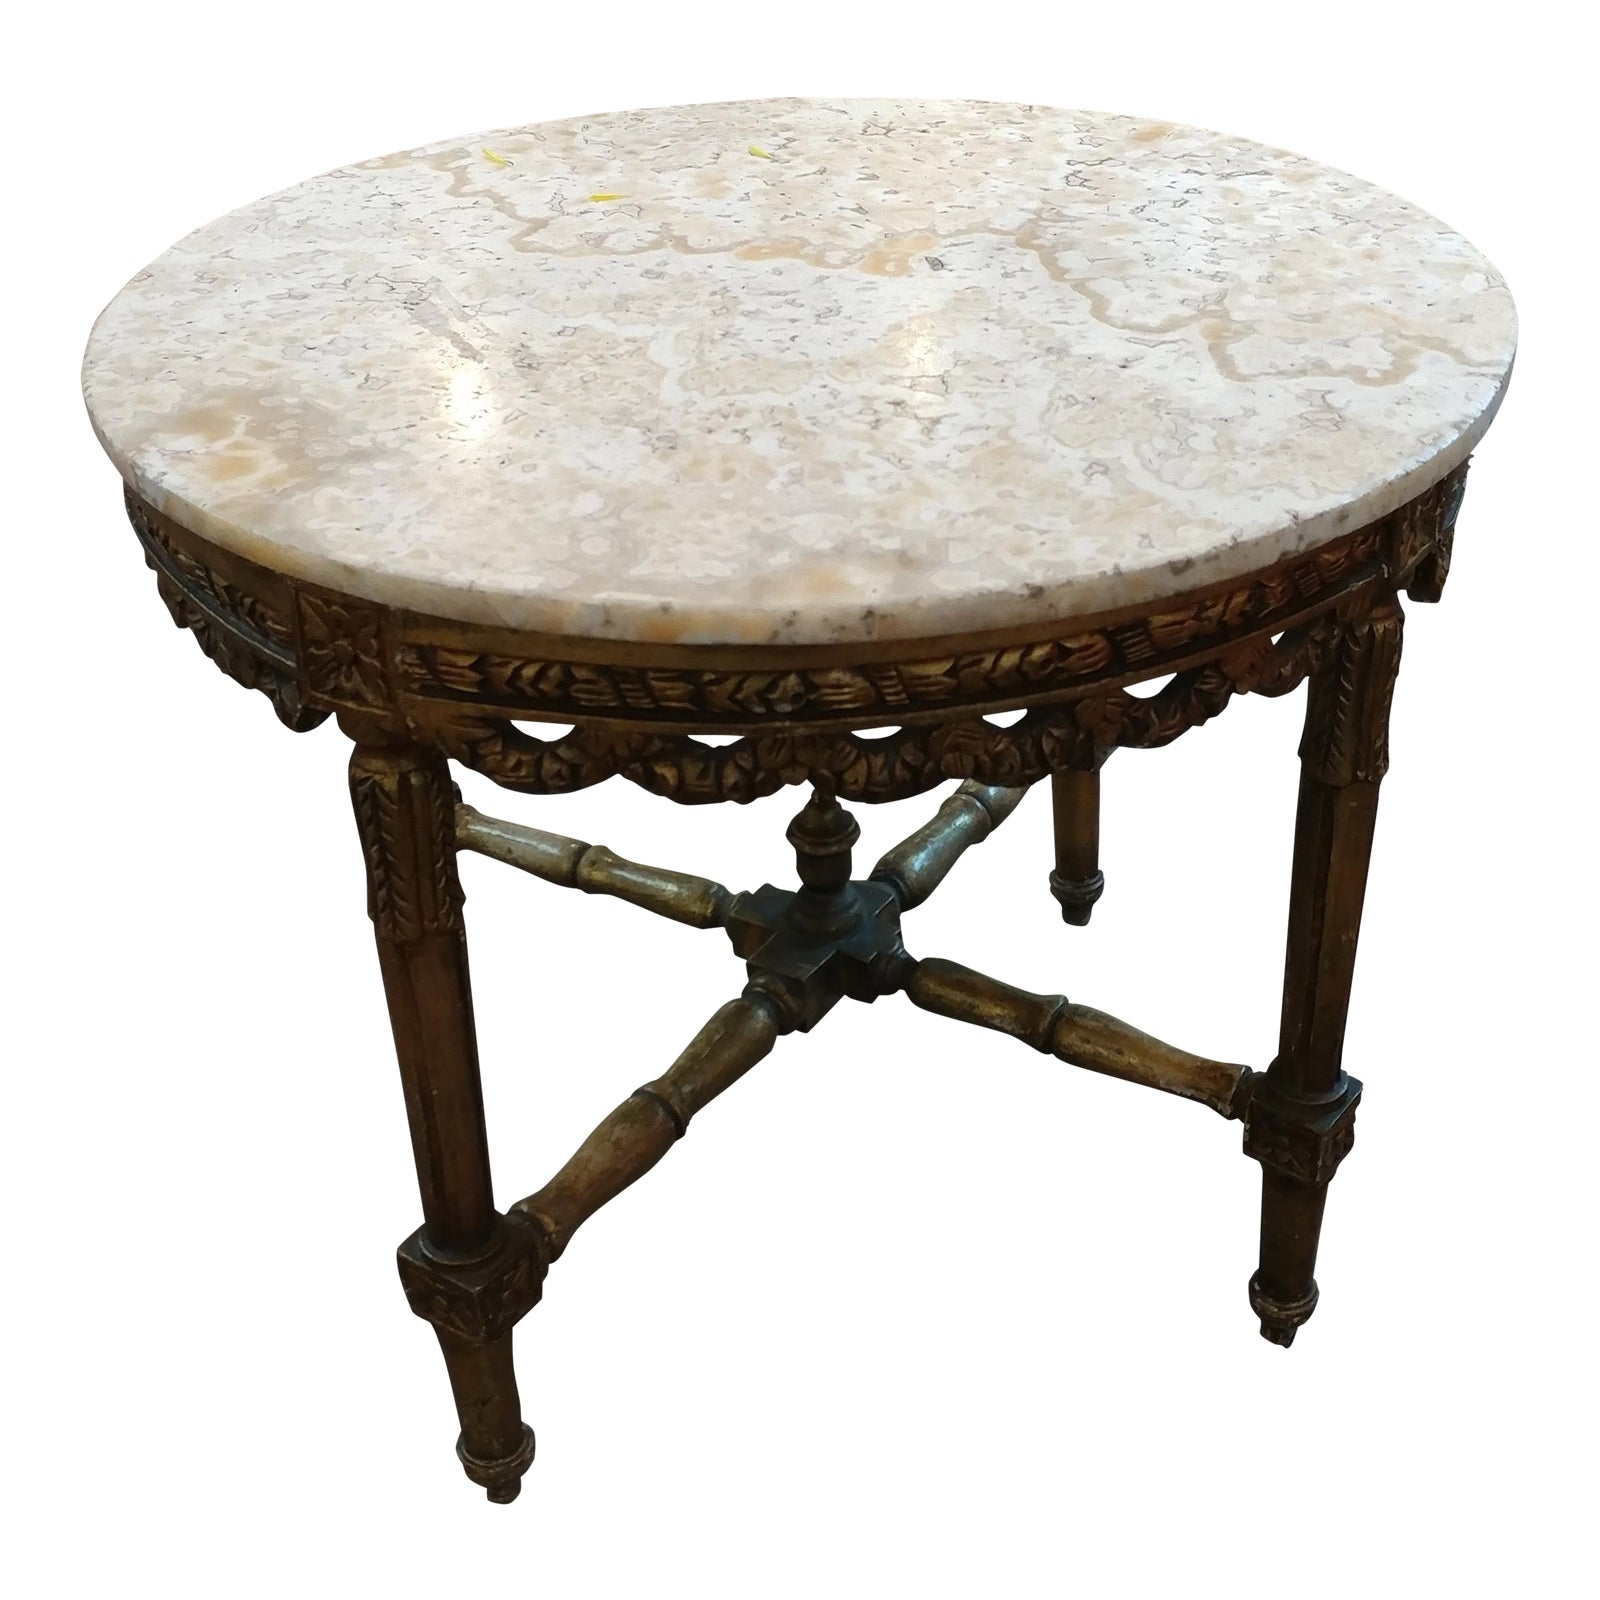 Marble Topped Gilt Coffee Table C 1920: 19th Century Louis XV Carved Gilt & Marble Top Coffee